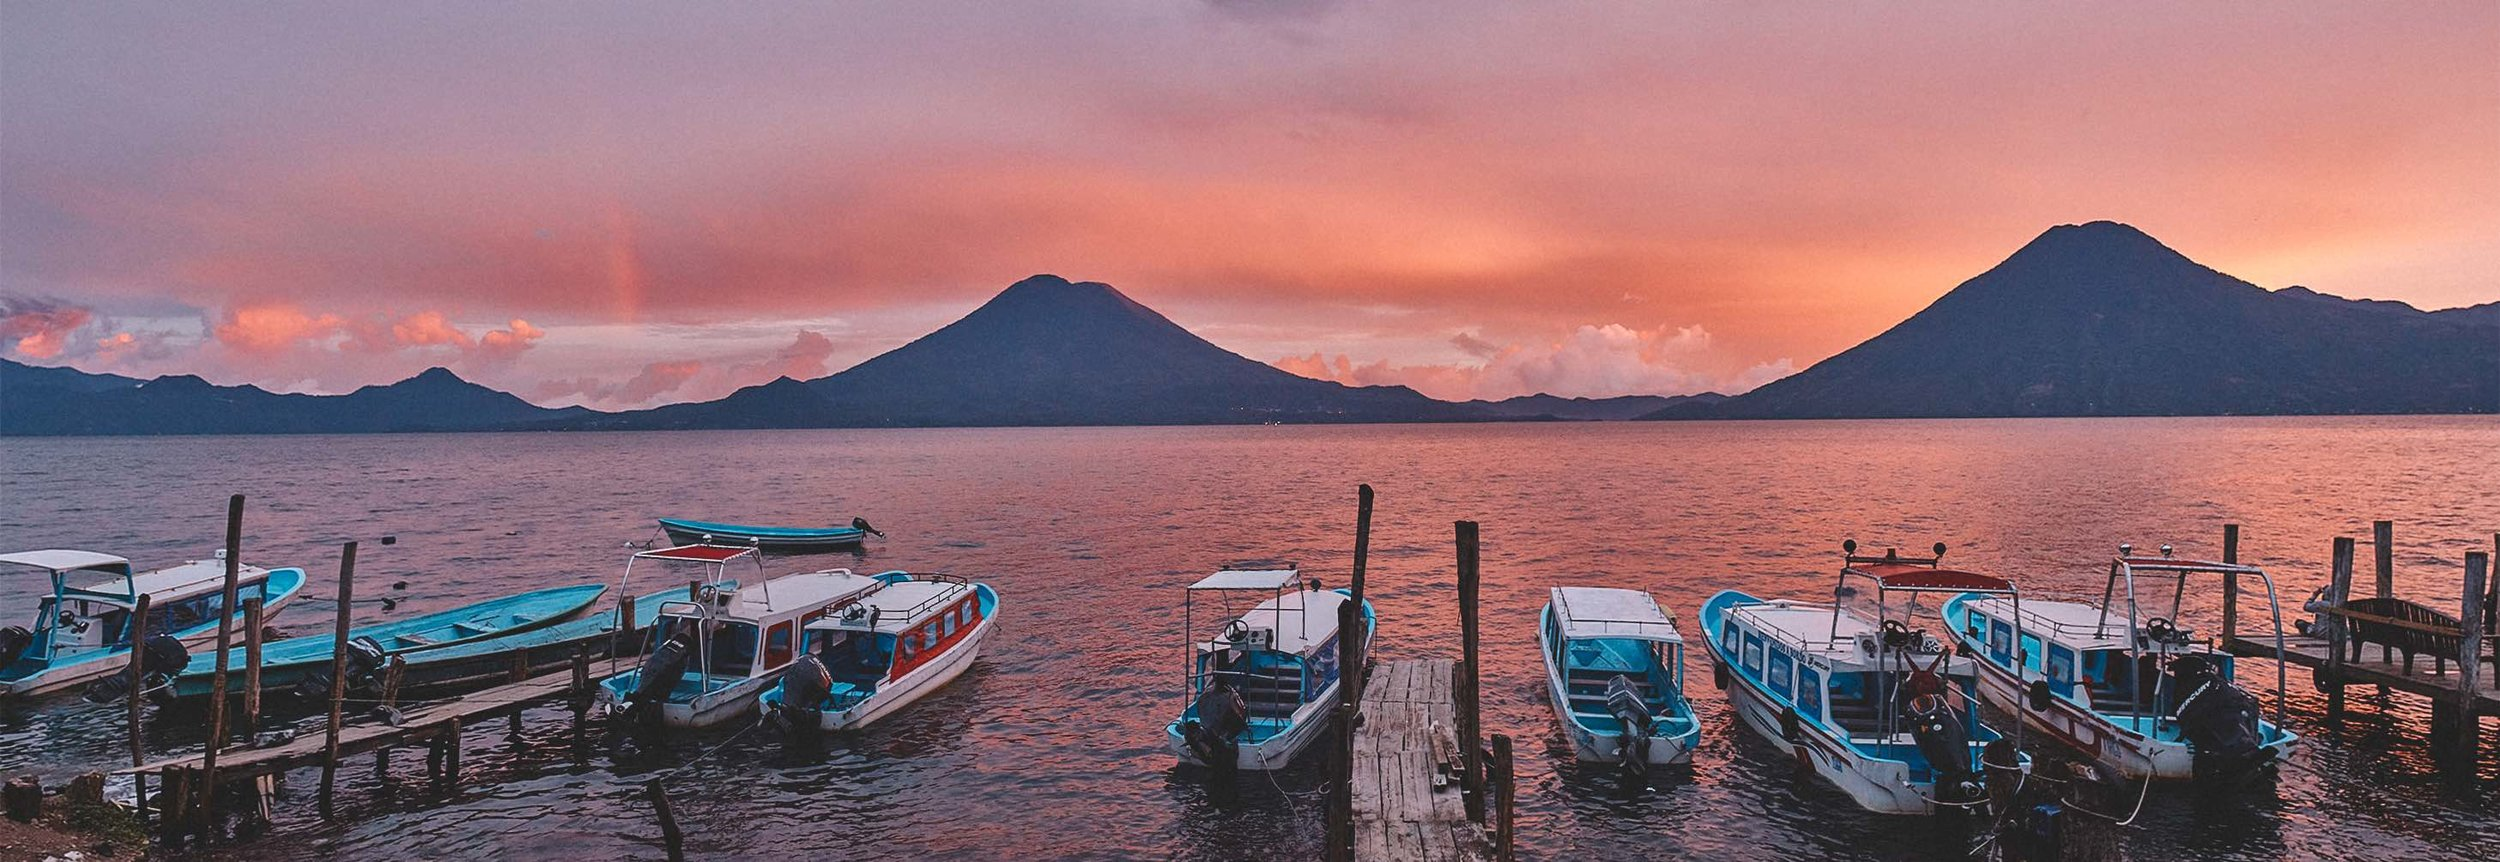 Lake Atitlan. Photo by Willie Kessel.